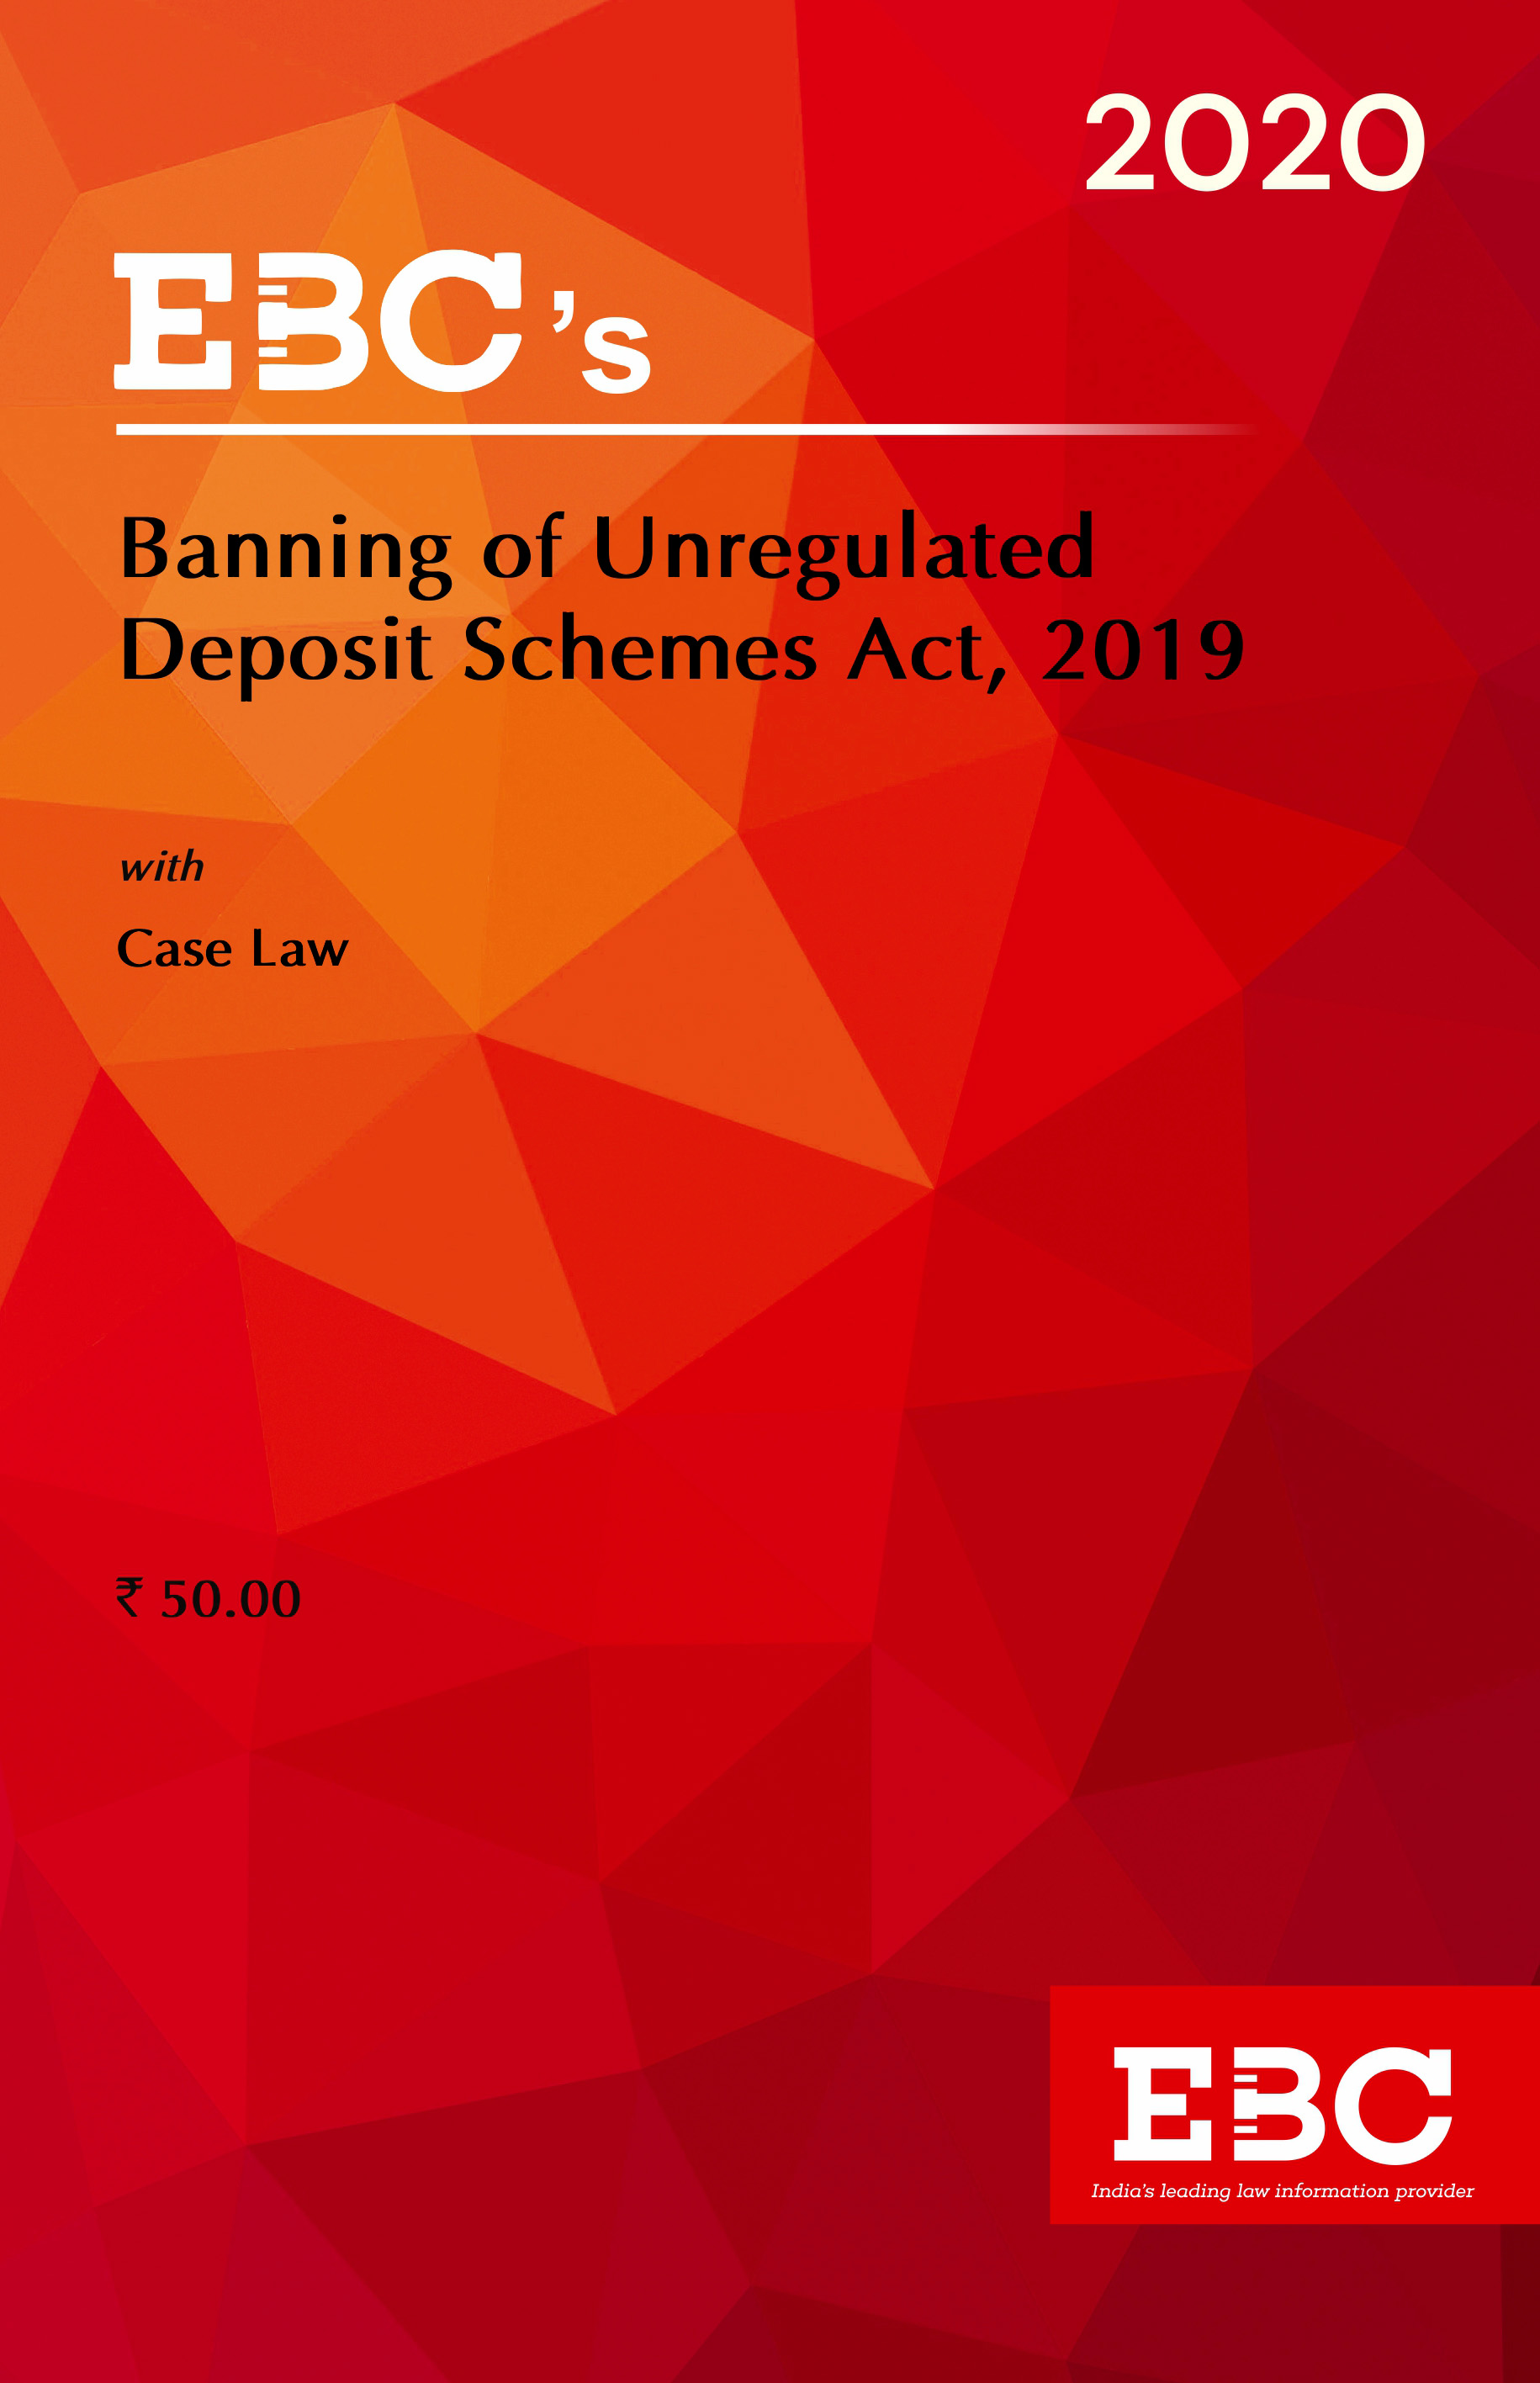 Banning of Unregulated Deposit Schemes Act, 2019